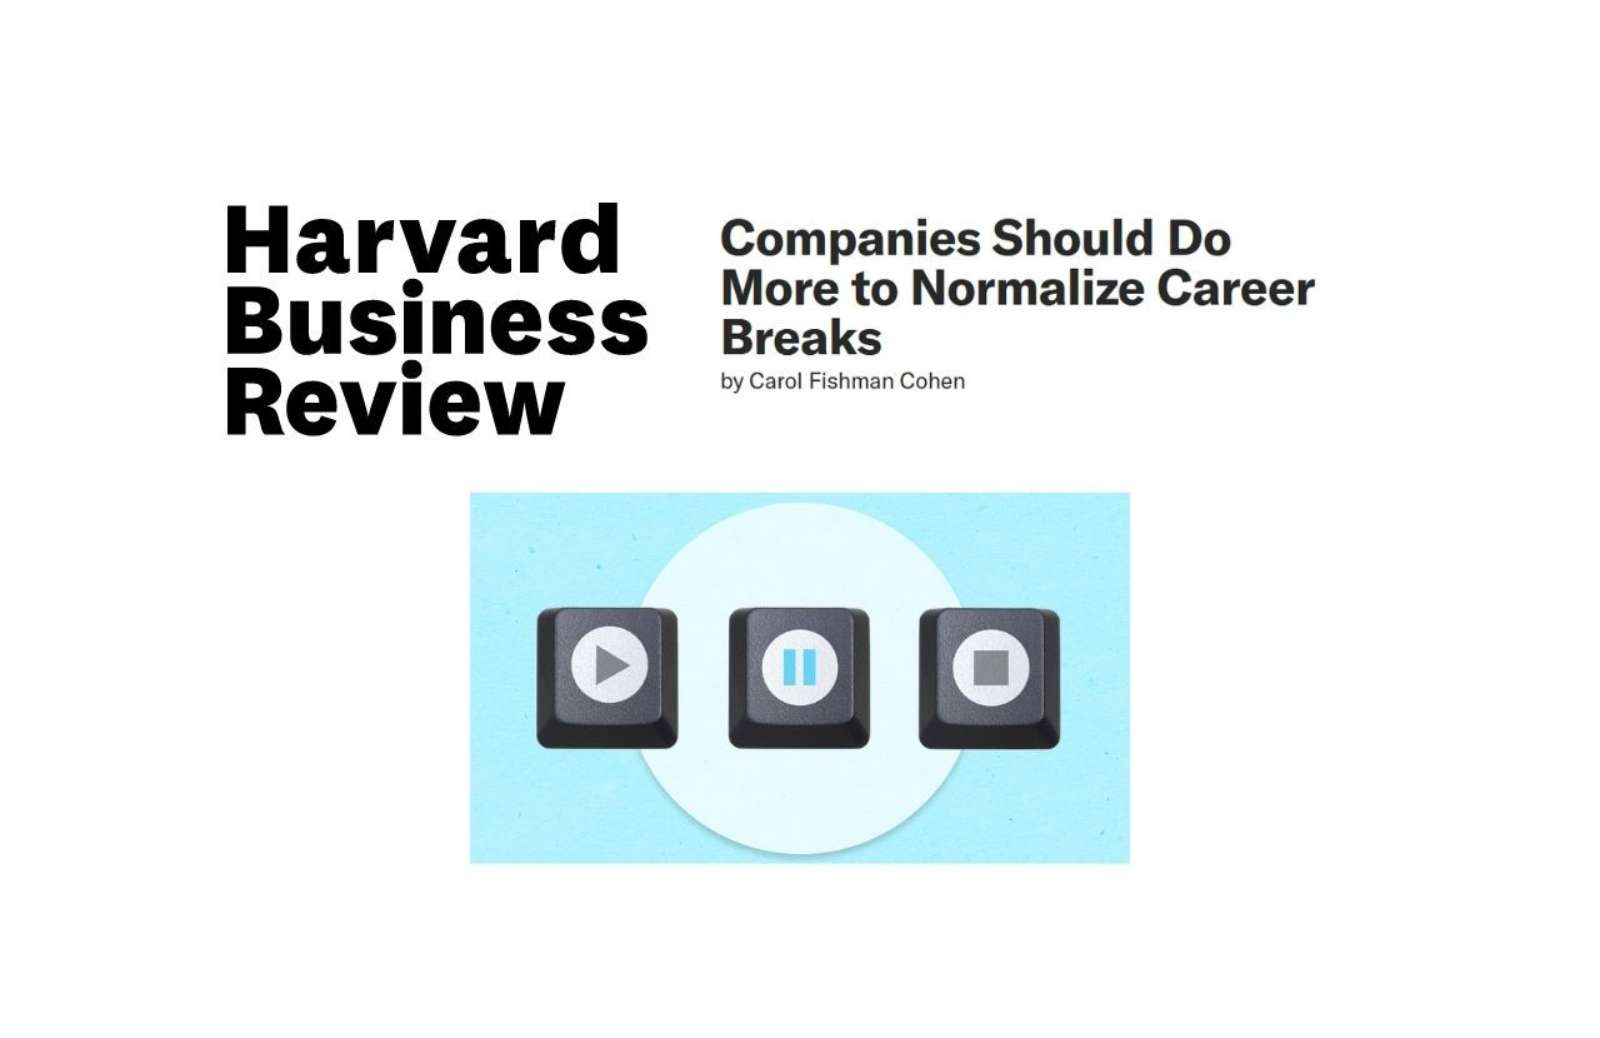 HBR Companies Should Do More to Normalize Career Breaks news thumbnail